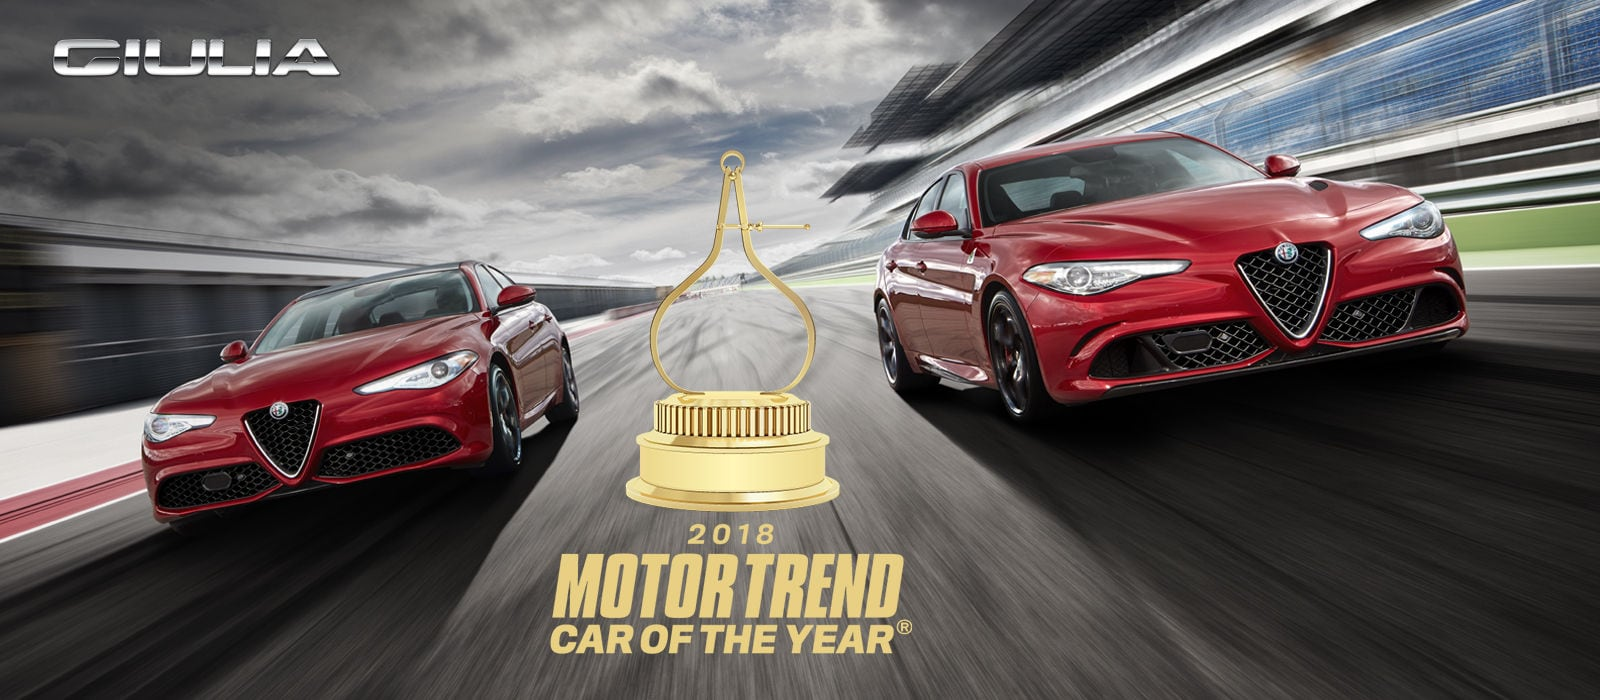 2018 Motor Trend Car of the Year